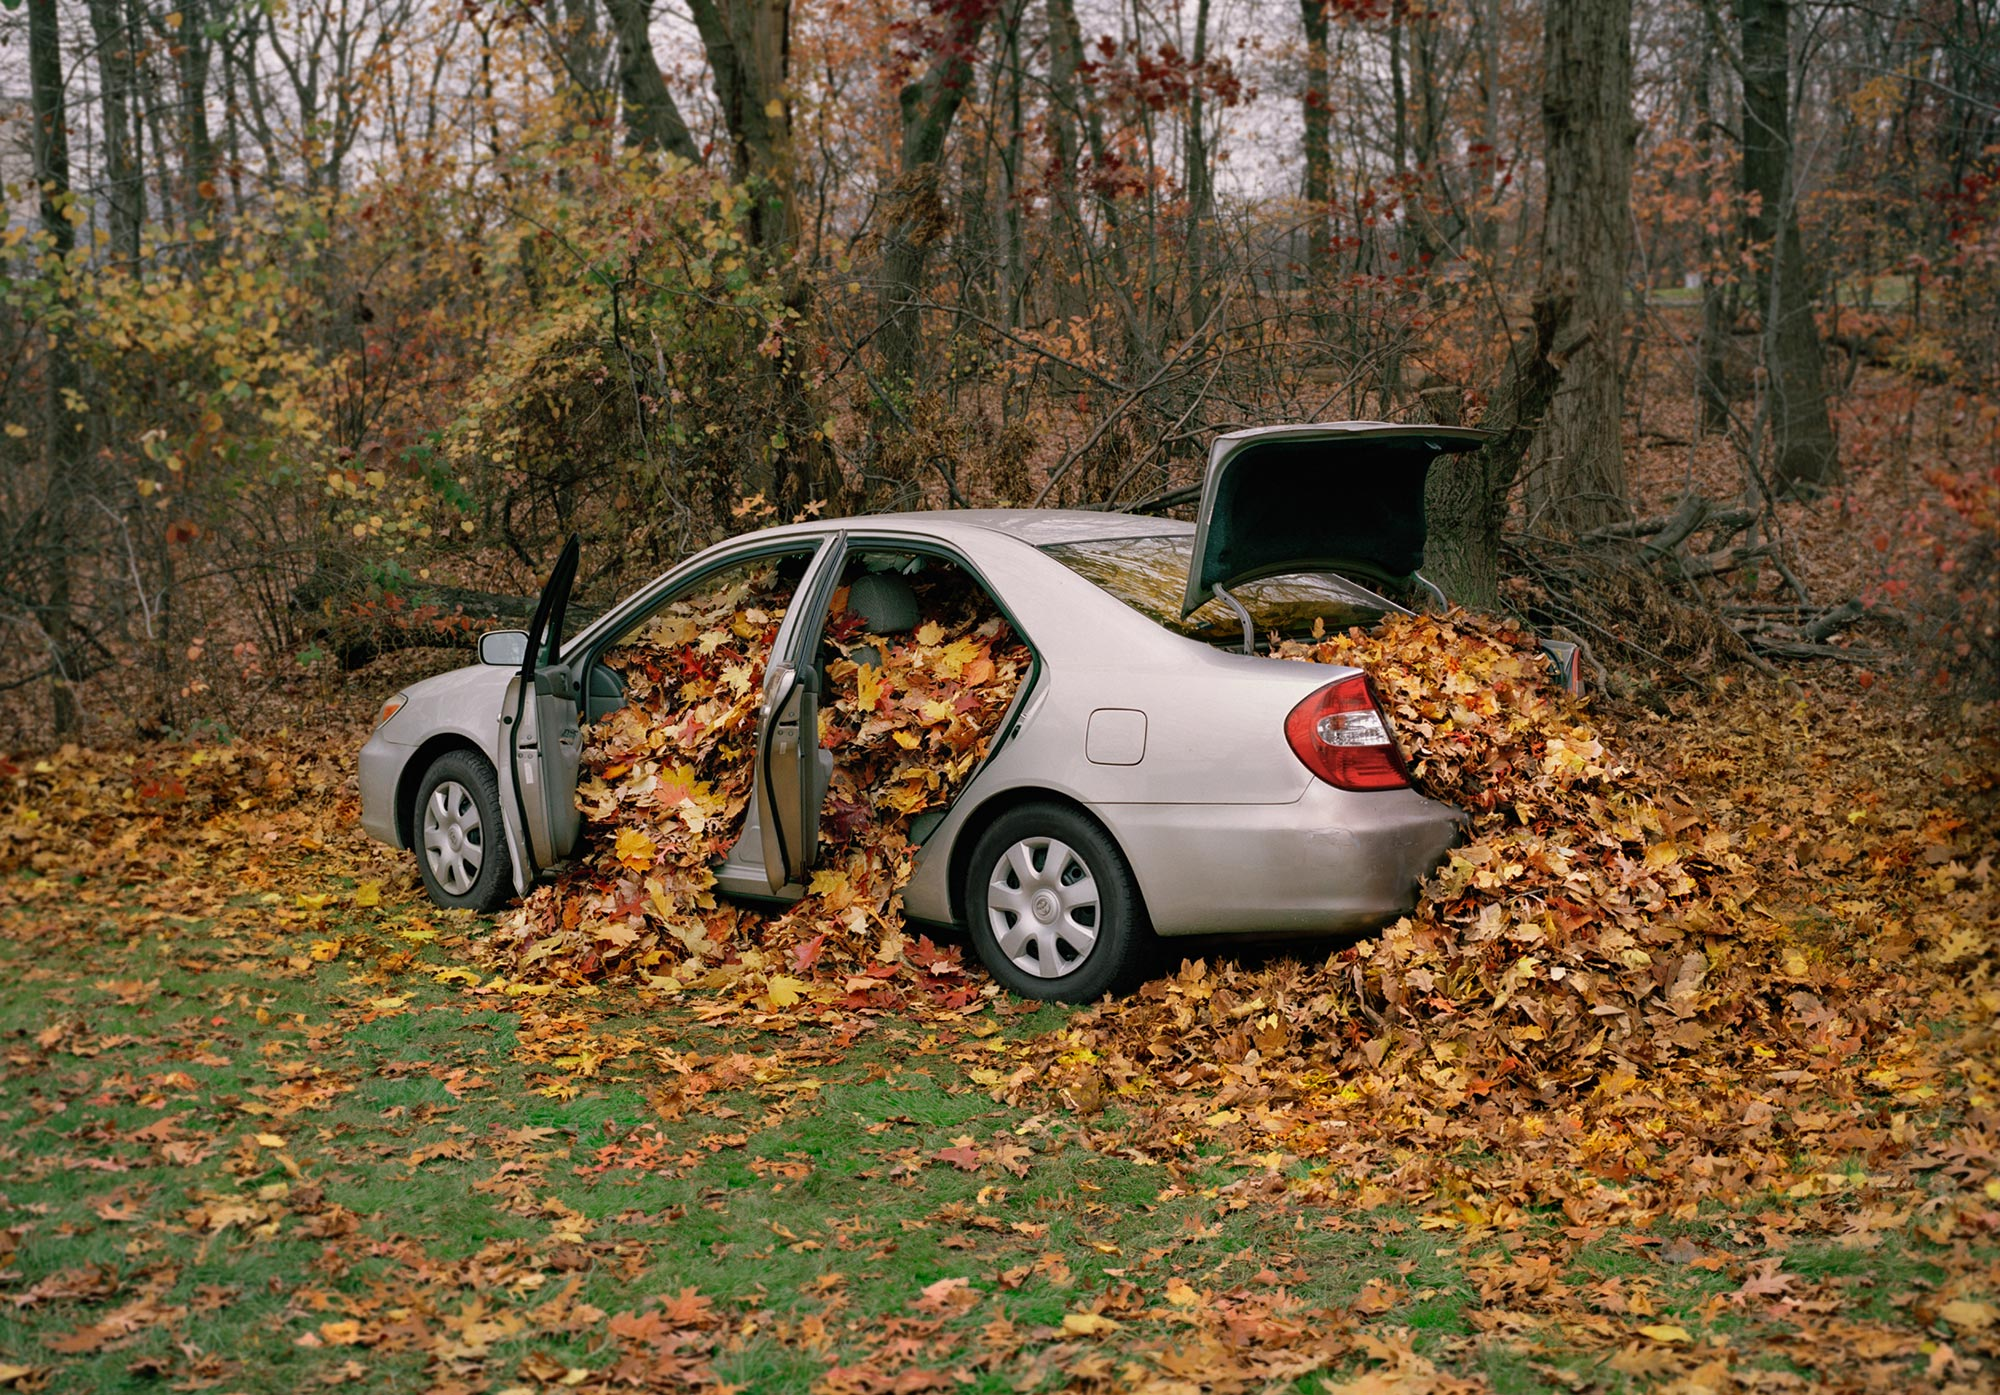 <i>My Father's Camry Filled with Leaves</i>